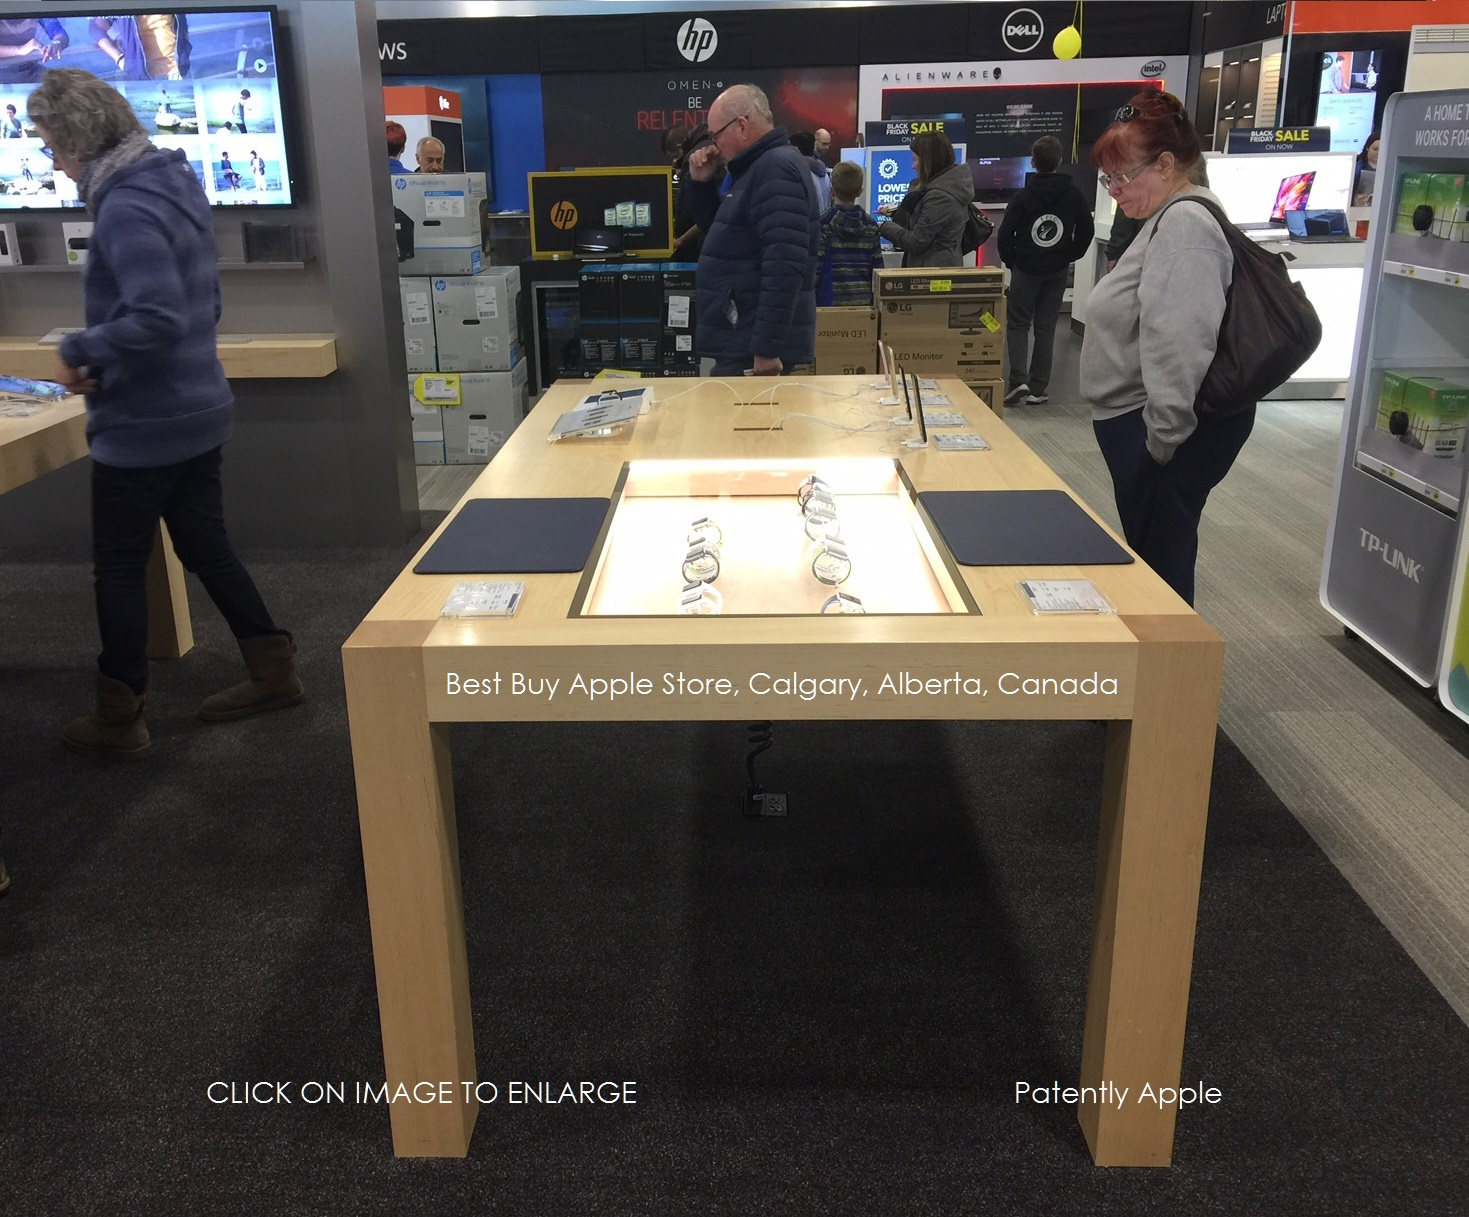 3A 9999 X APPLE STORE IN BEST BUY NEW HYBRID TABLE FOR IPHONES AND APPLE  WATCH